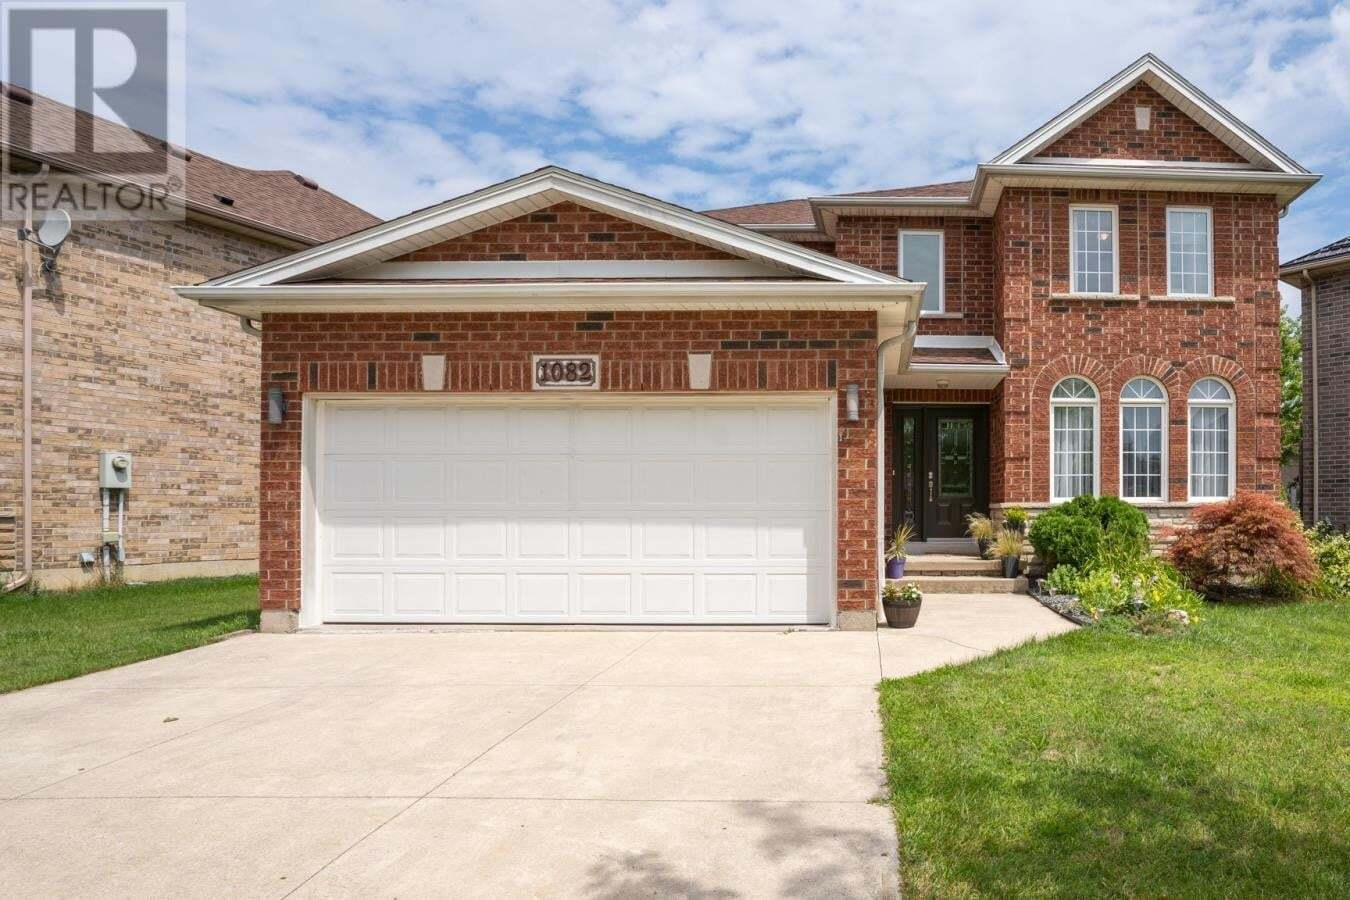 House for sale at 1082 Whistler  Windsor Ontario - MLS: 20011949